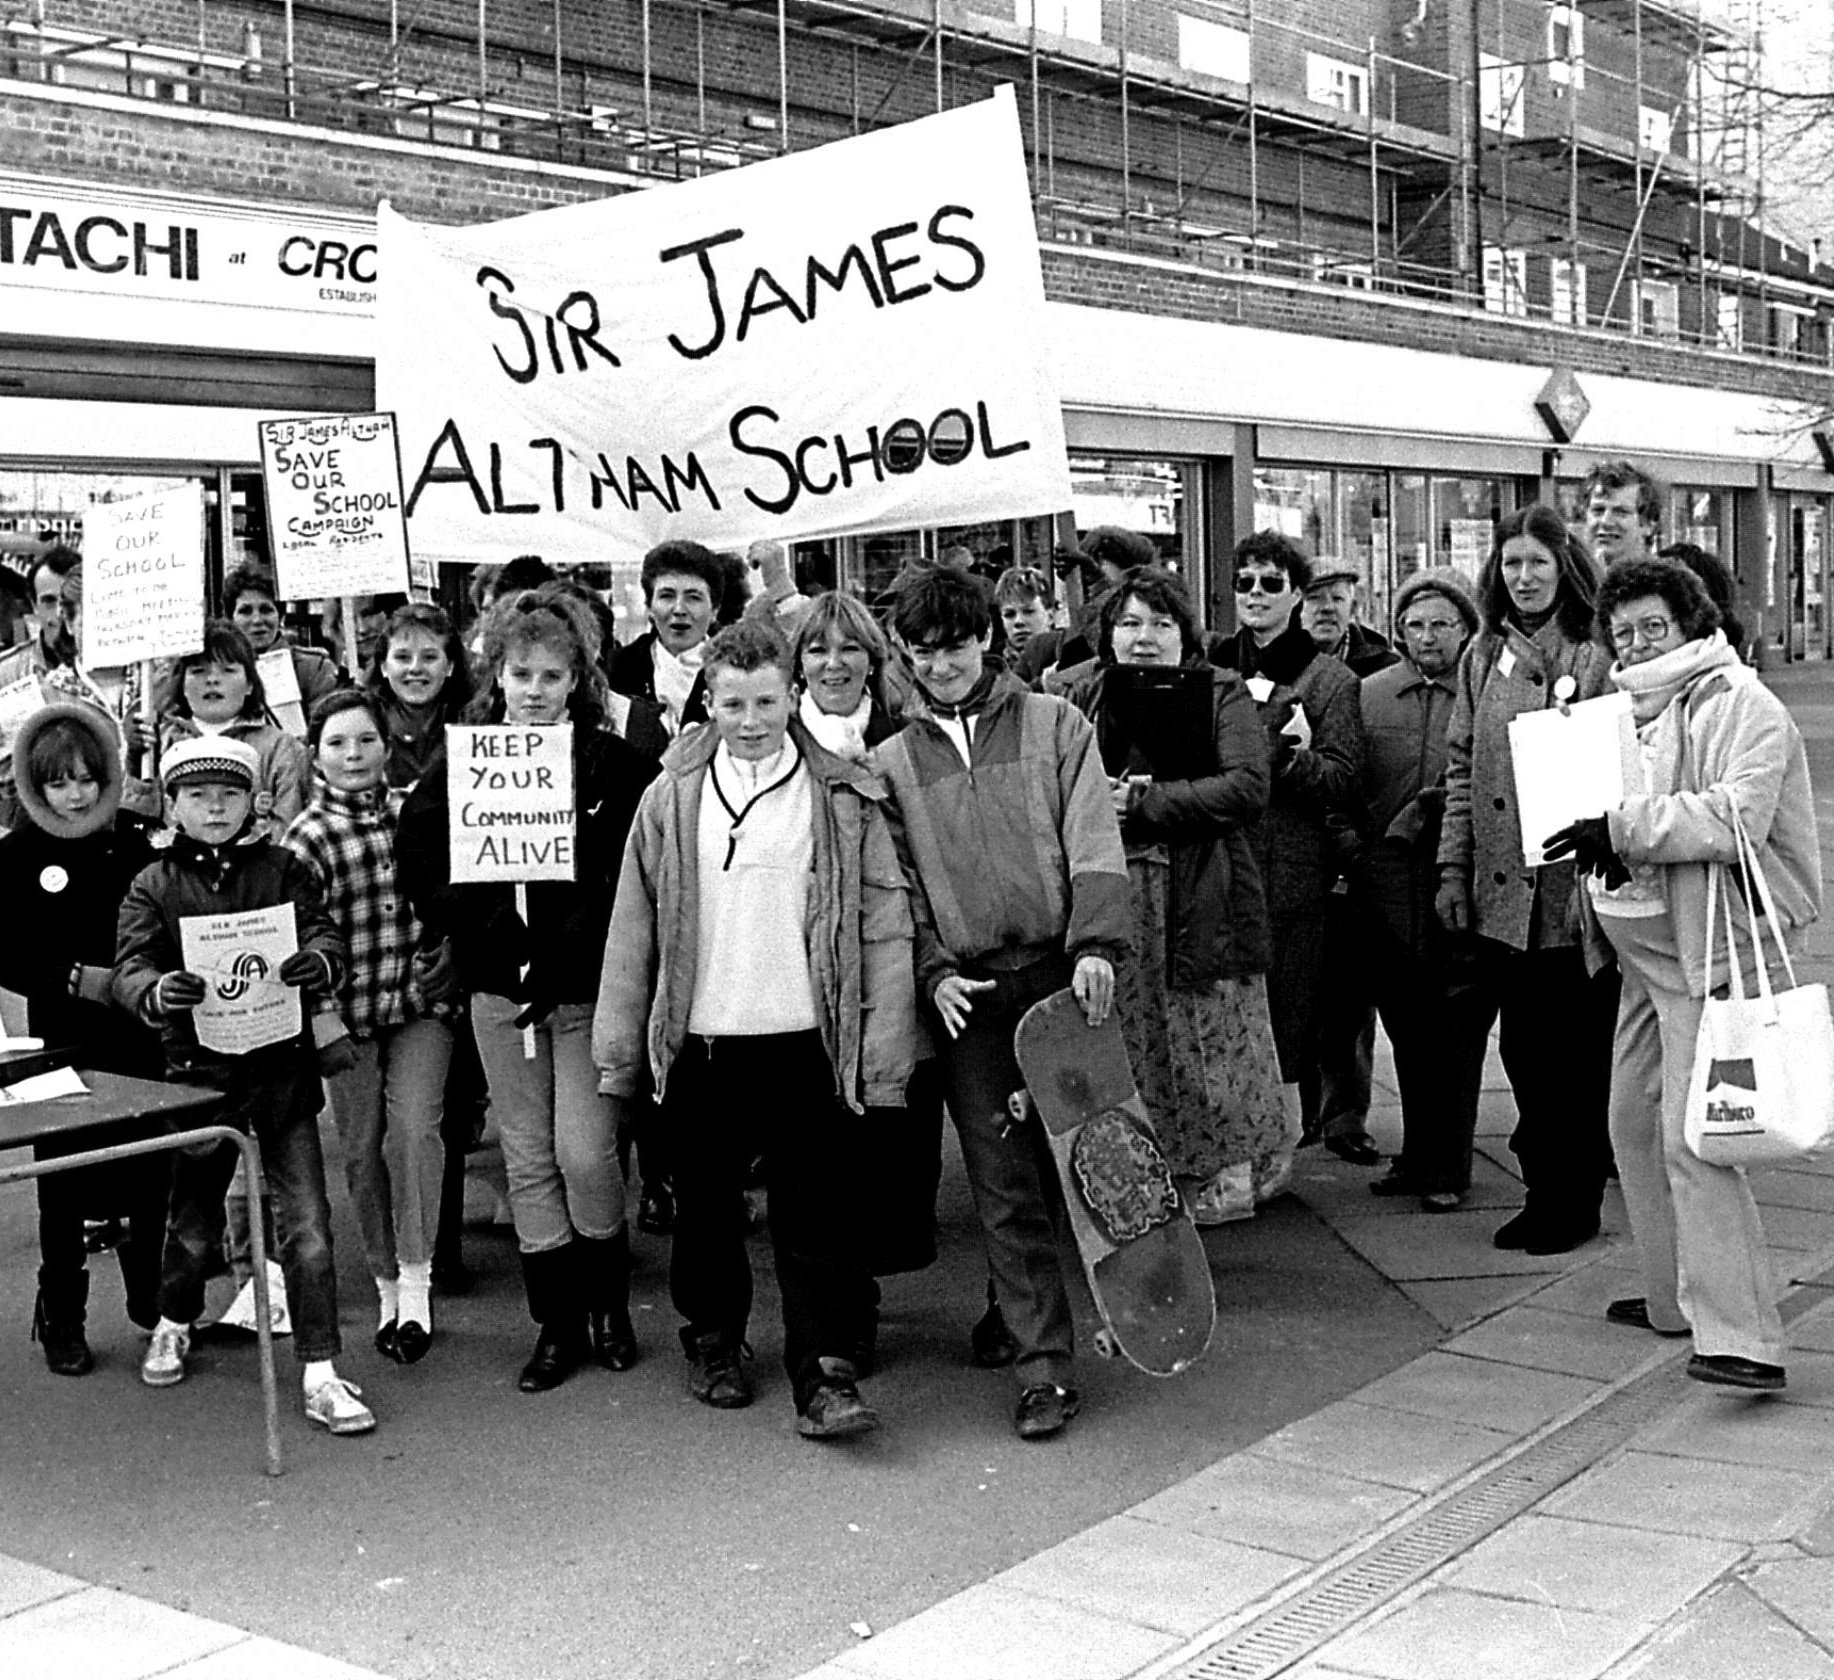 Protest over the closure of Sir James Altham School